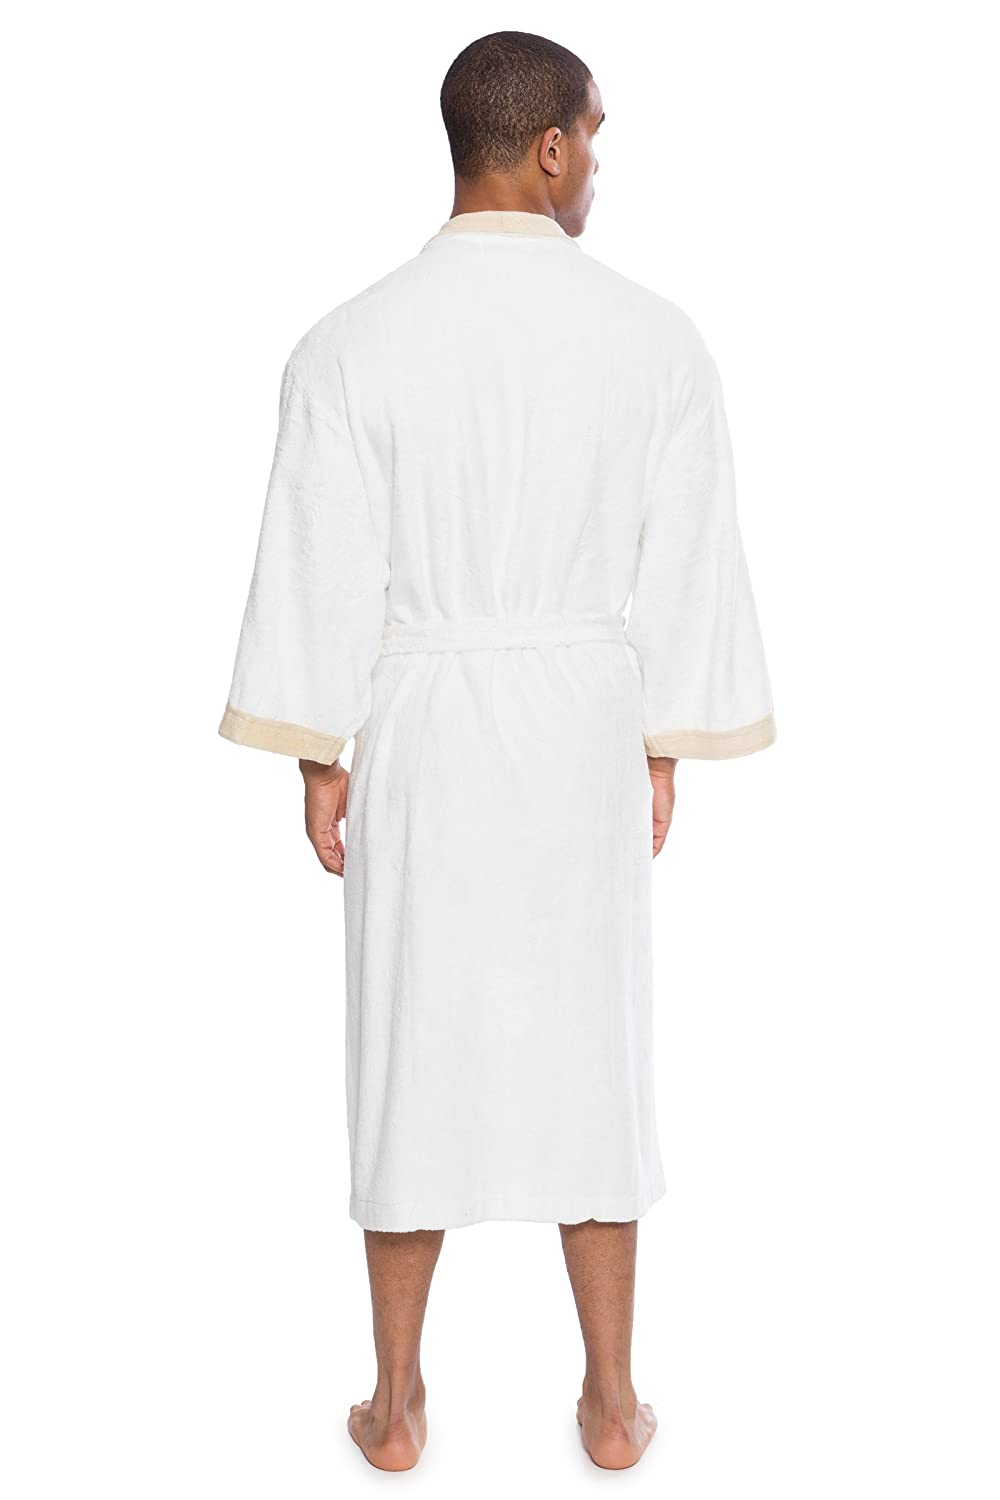 Comfortable Spa Gift for Him Turilano Texere Mens Terry Cloth Bath Robe